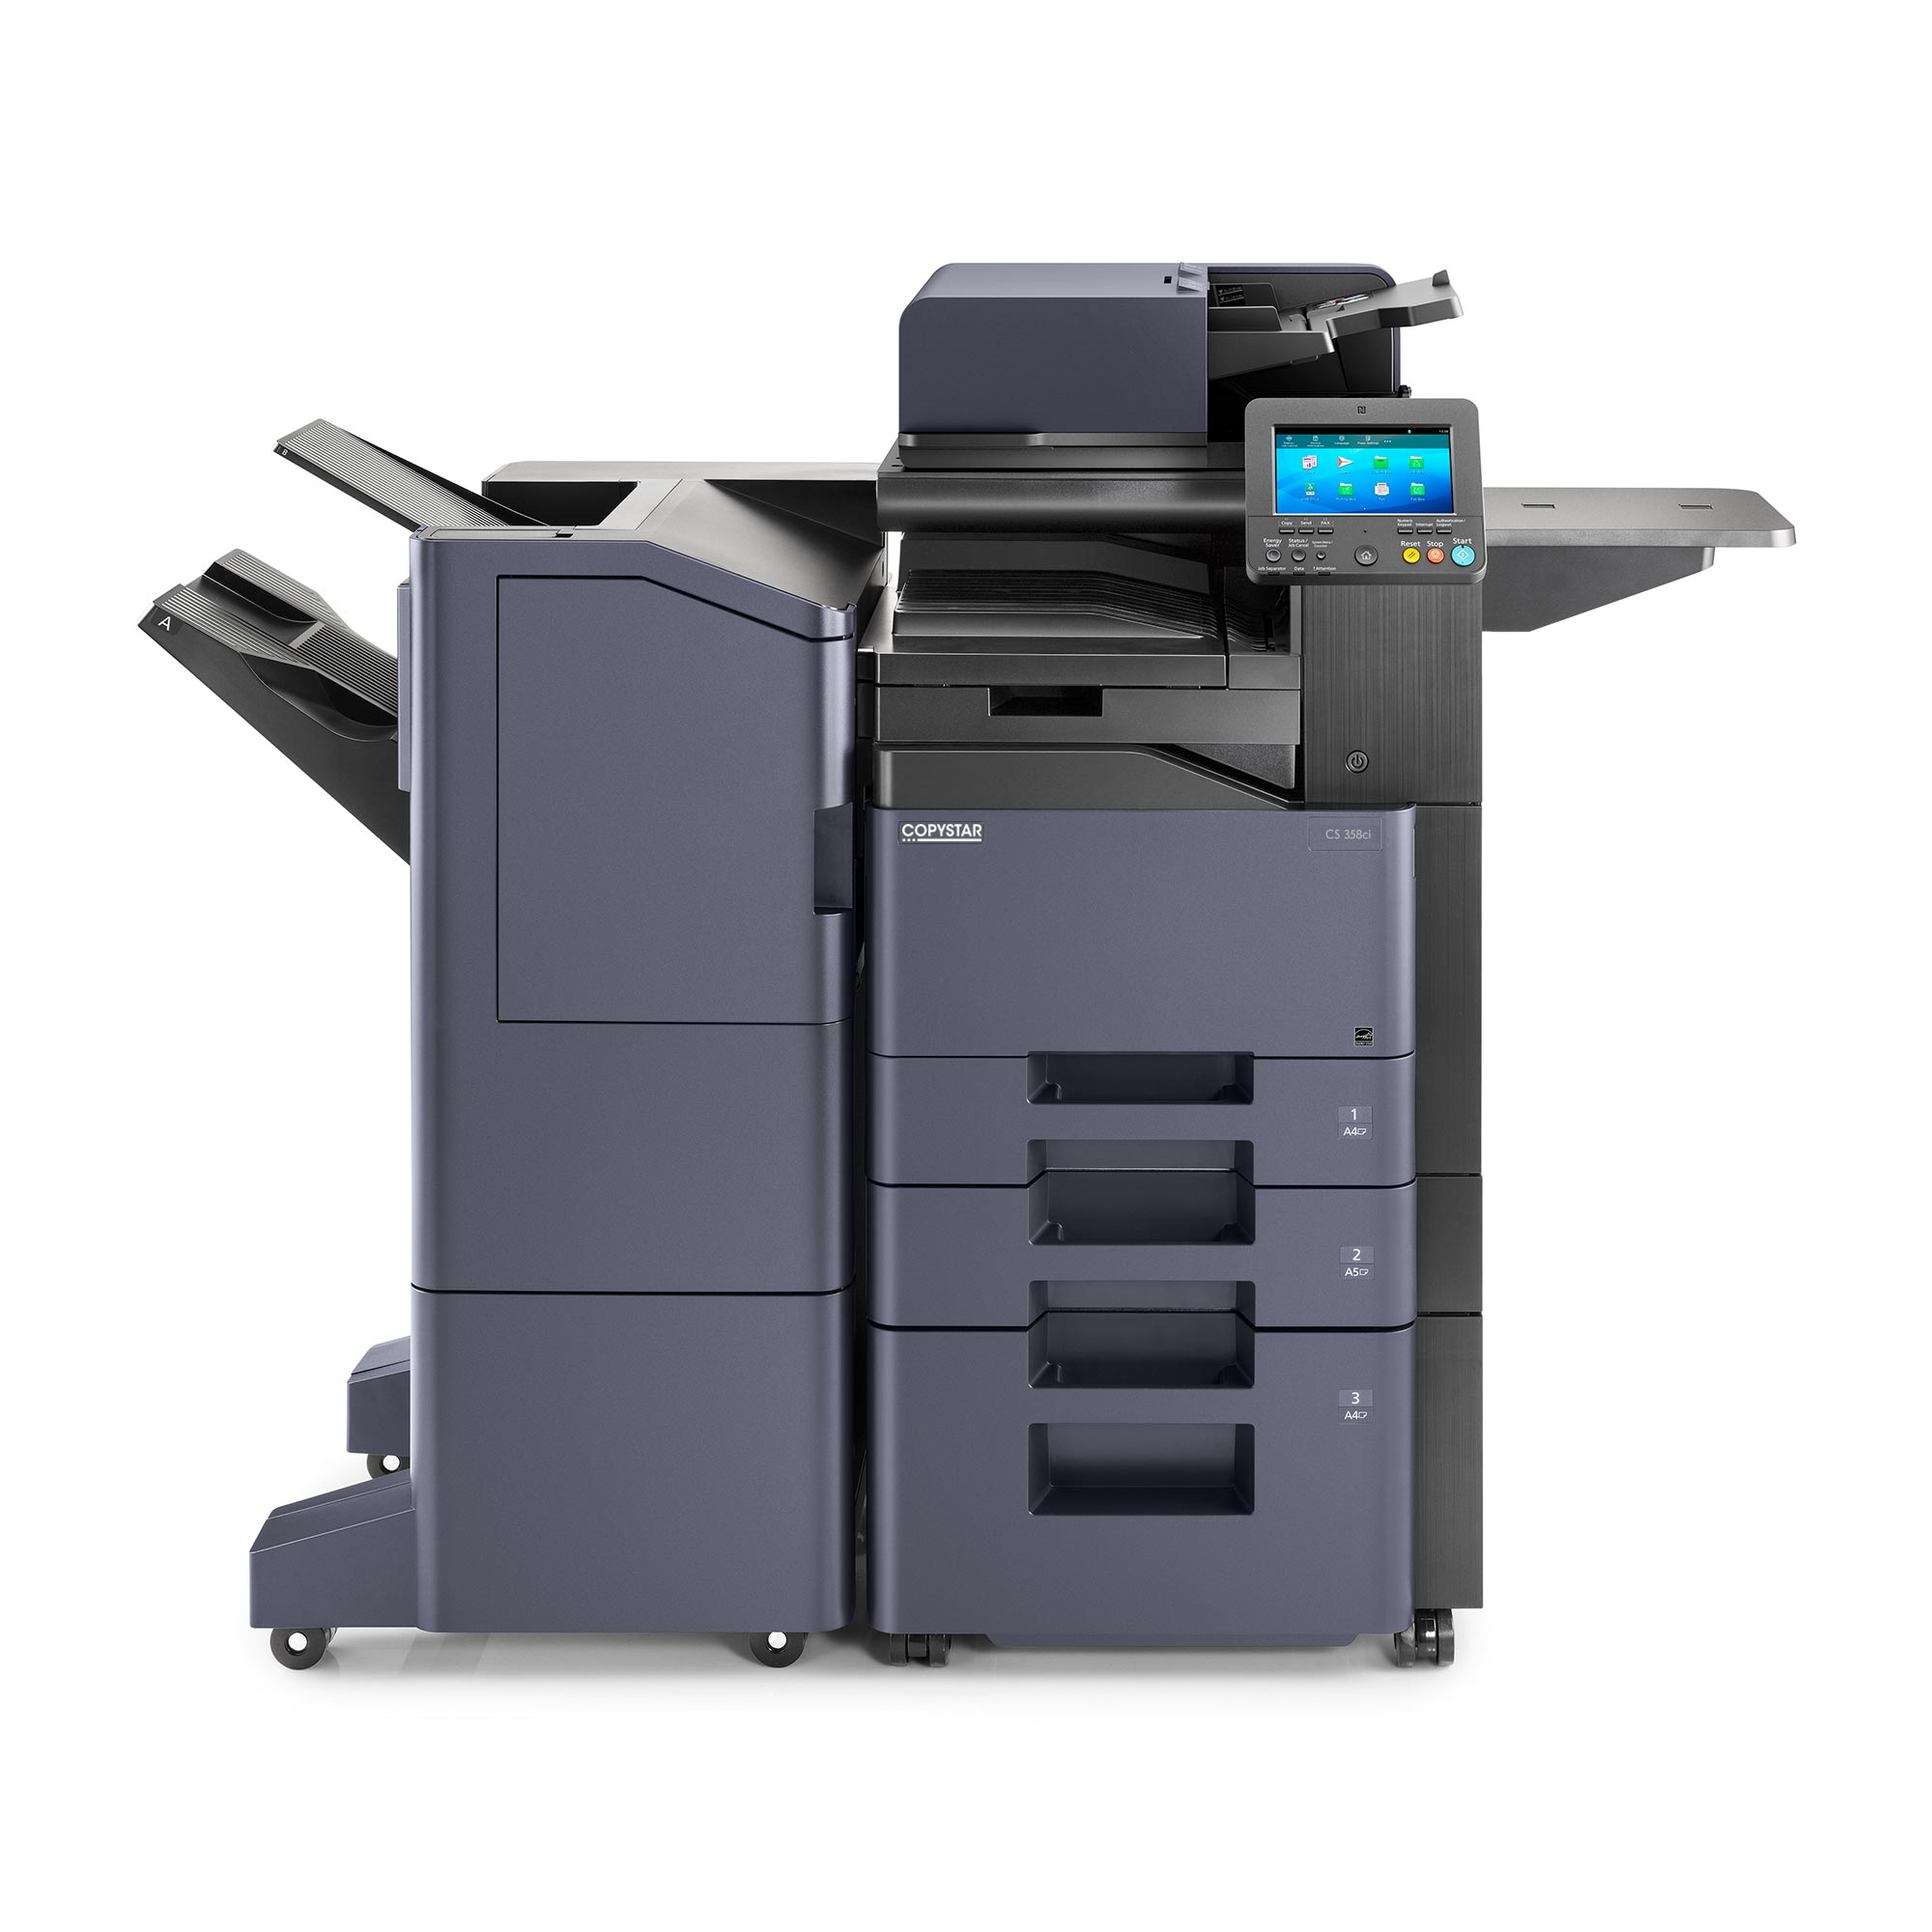 Kyocera CS_358ci - Copy Machine Lease